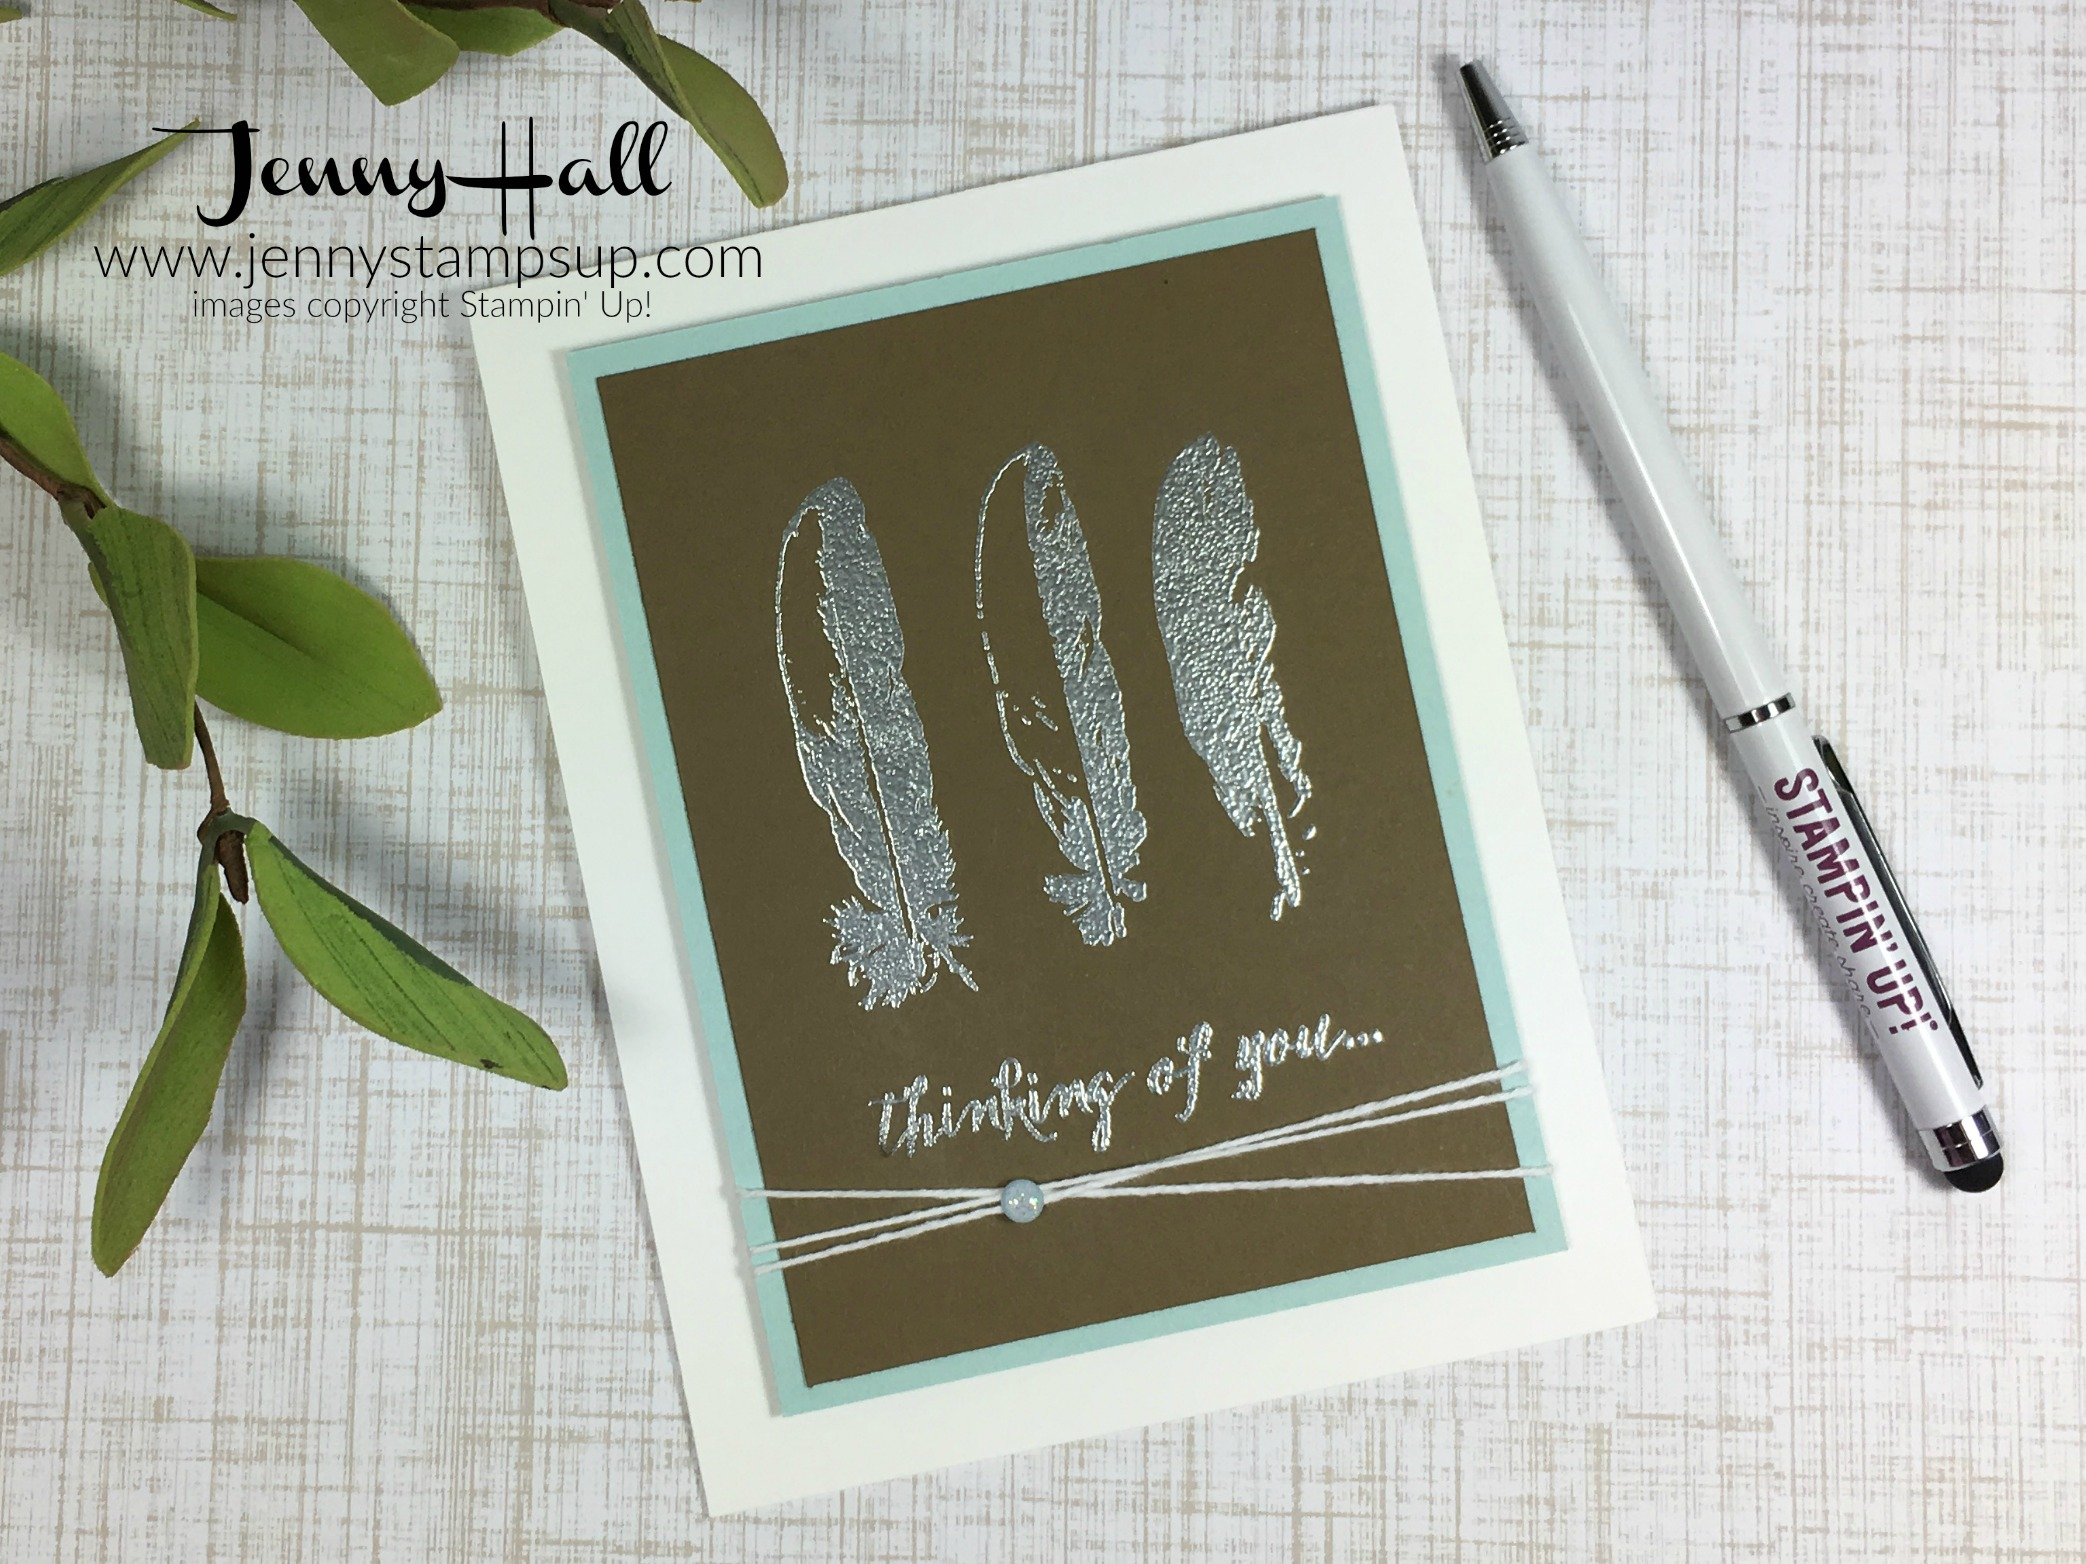 Feather Together by Jenny Hall www.jennyhalldesign.com